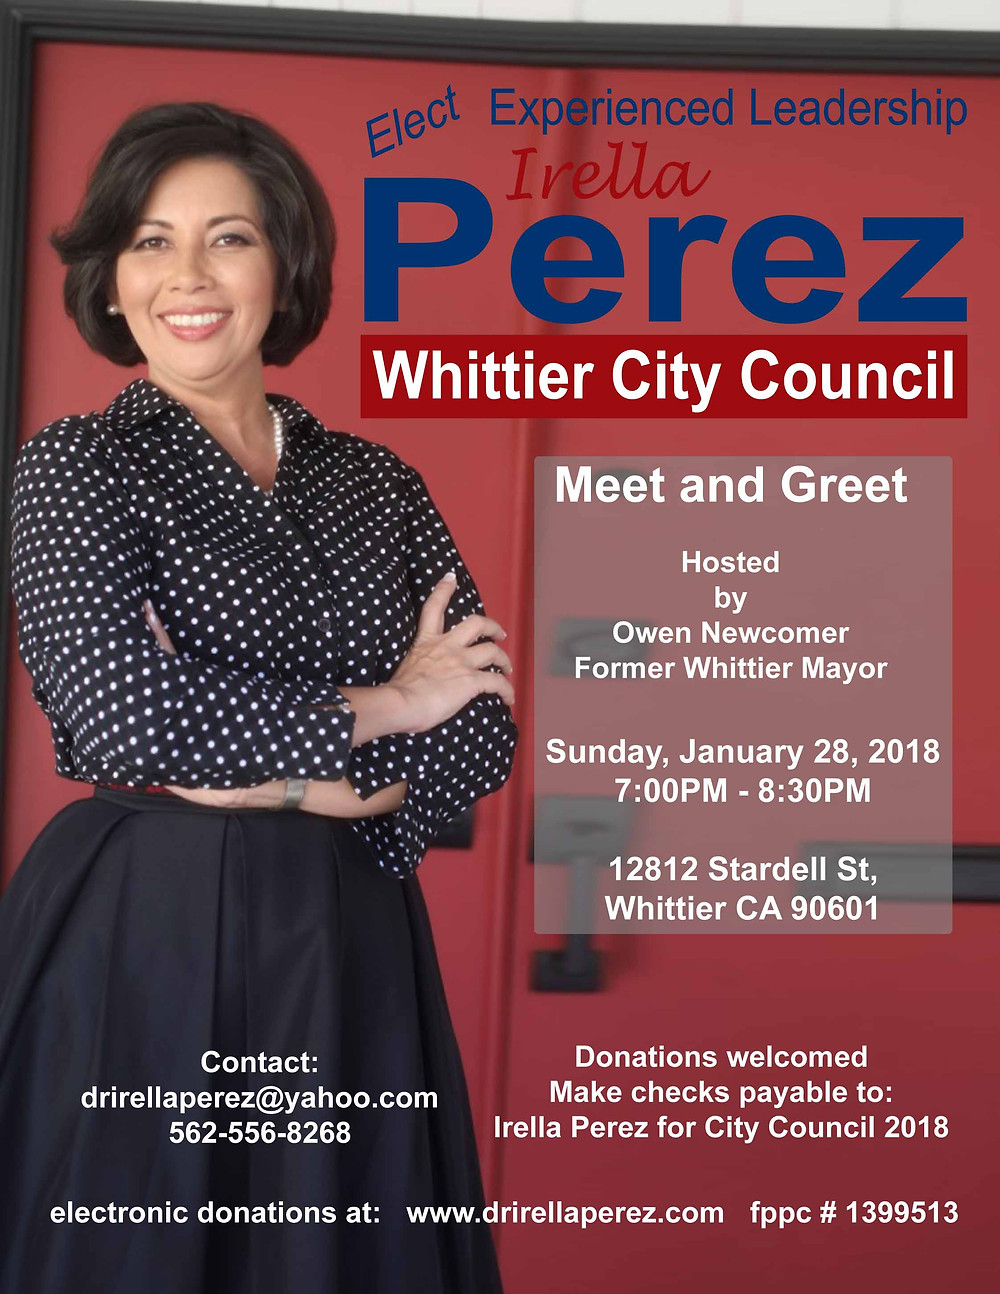 Please accept my invitation to my Meet and Greet. Hope you can come and help me get Elected to Whittier City Council   Sunday, January 28  7:00p.m to 8:30p.m.  At my residence:  12812 Stardell St.  Whittier, CA 90601